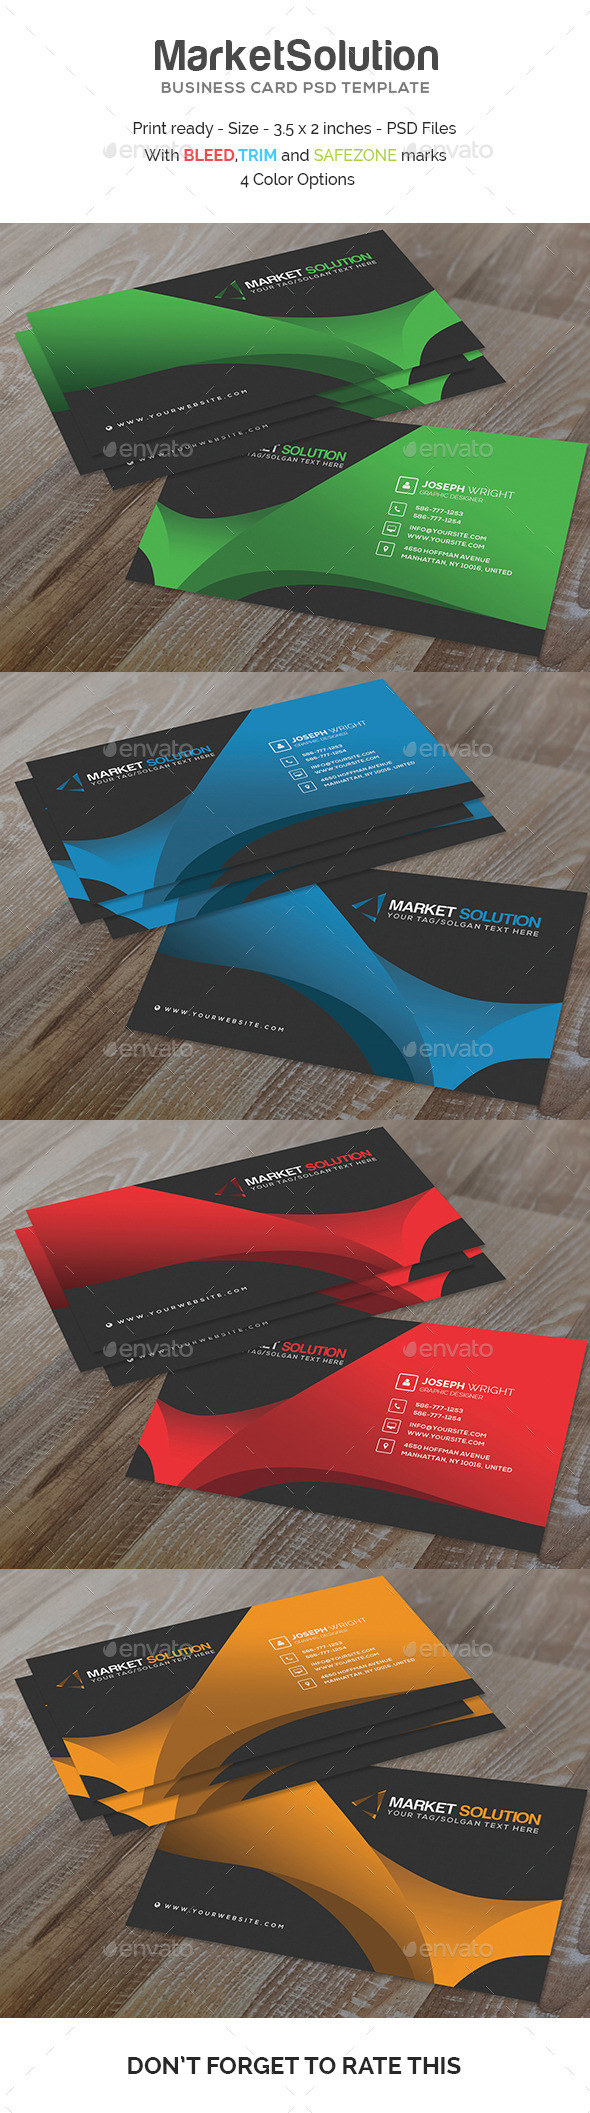 GraphicRiver Market Solution Business Card Template 11355260